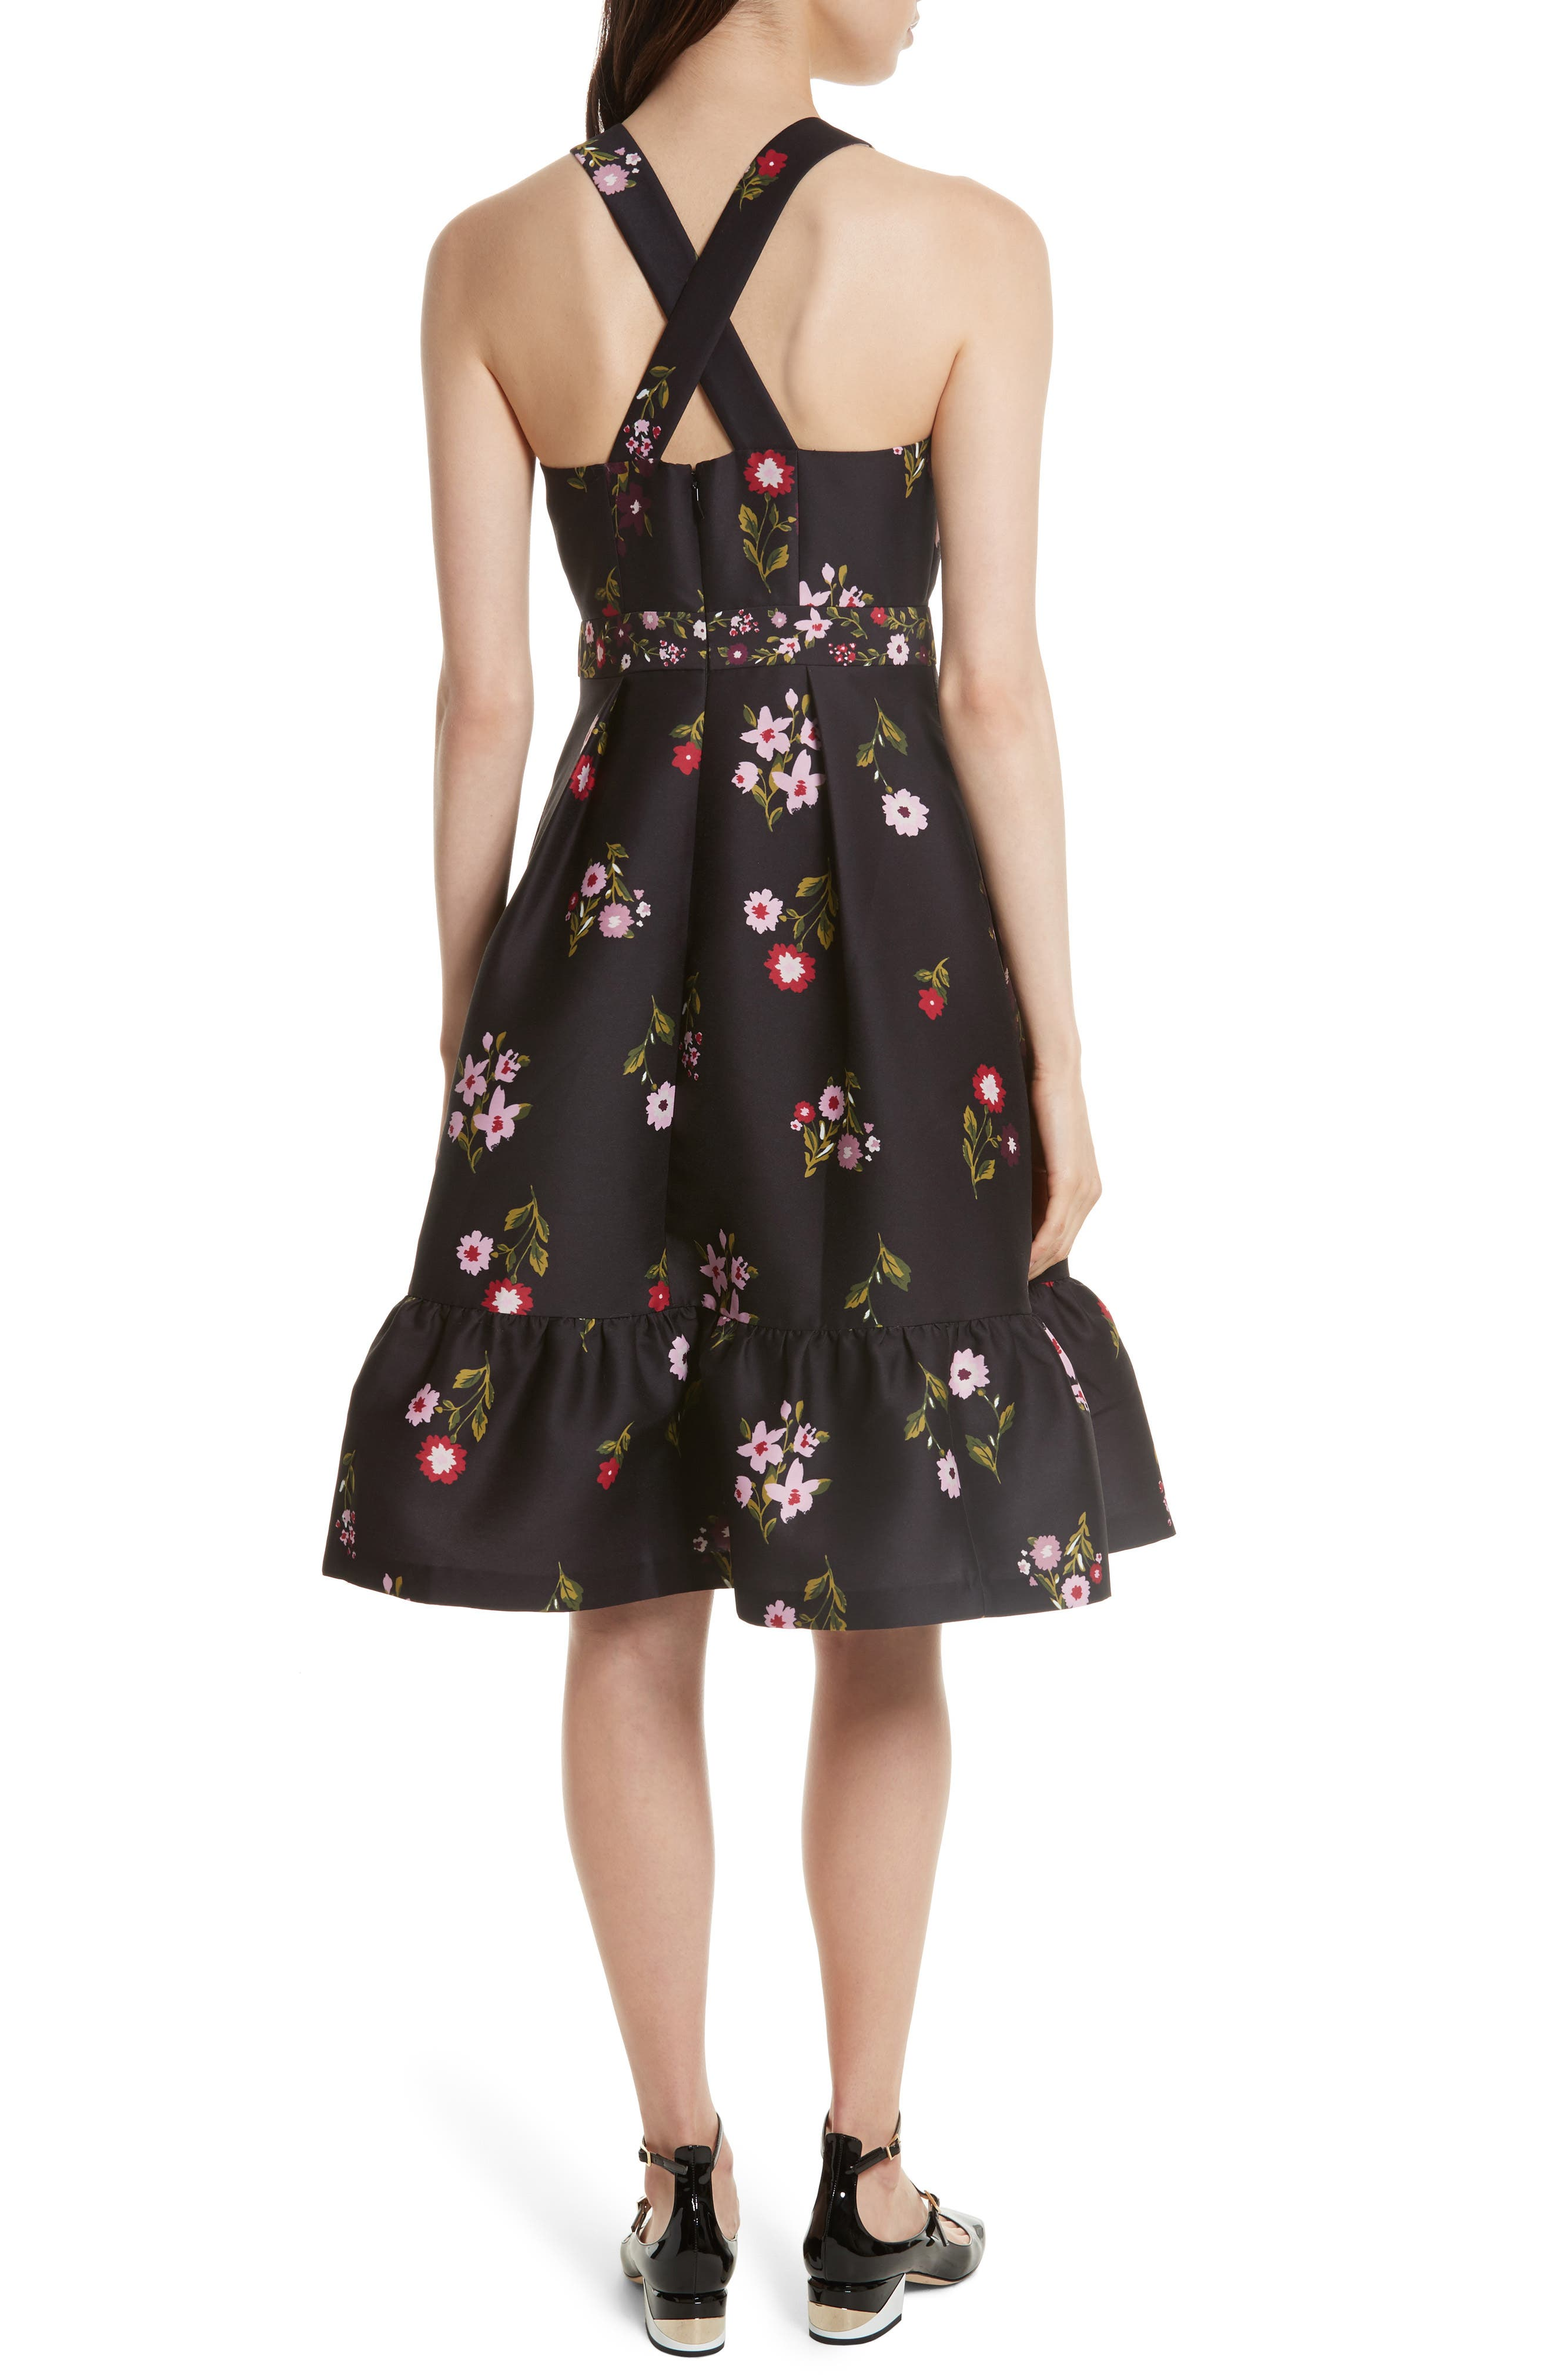 in bloom fit & flare dress,                             Alternate thumbnail 2, color,                             006